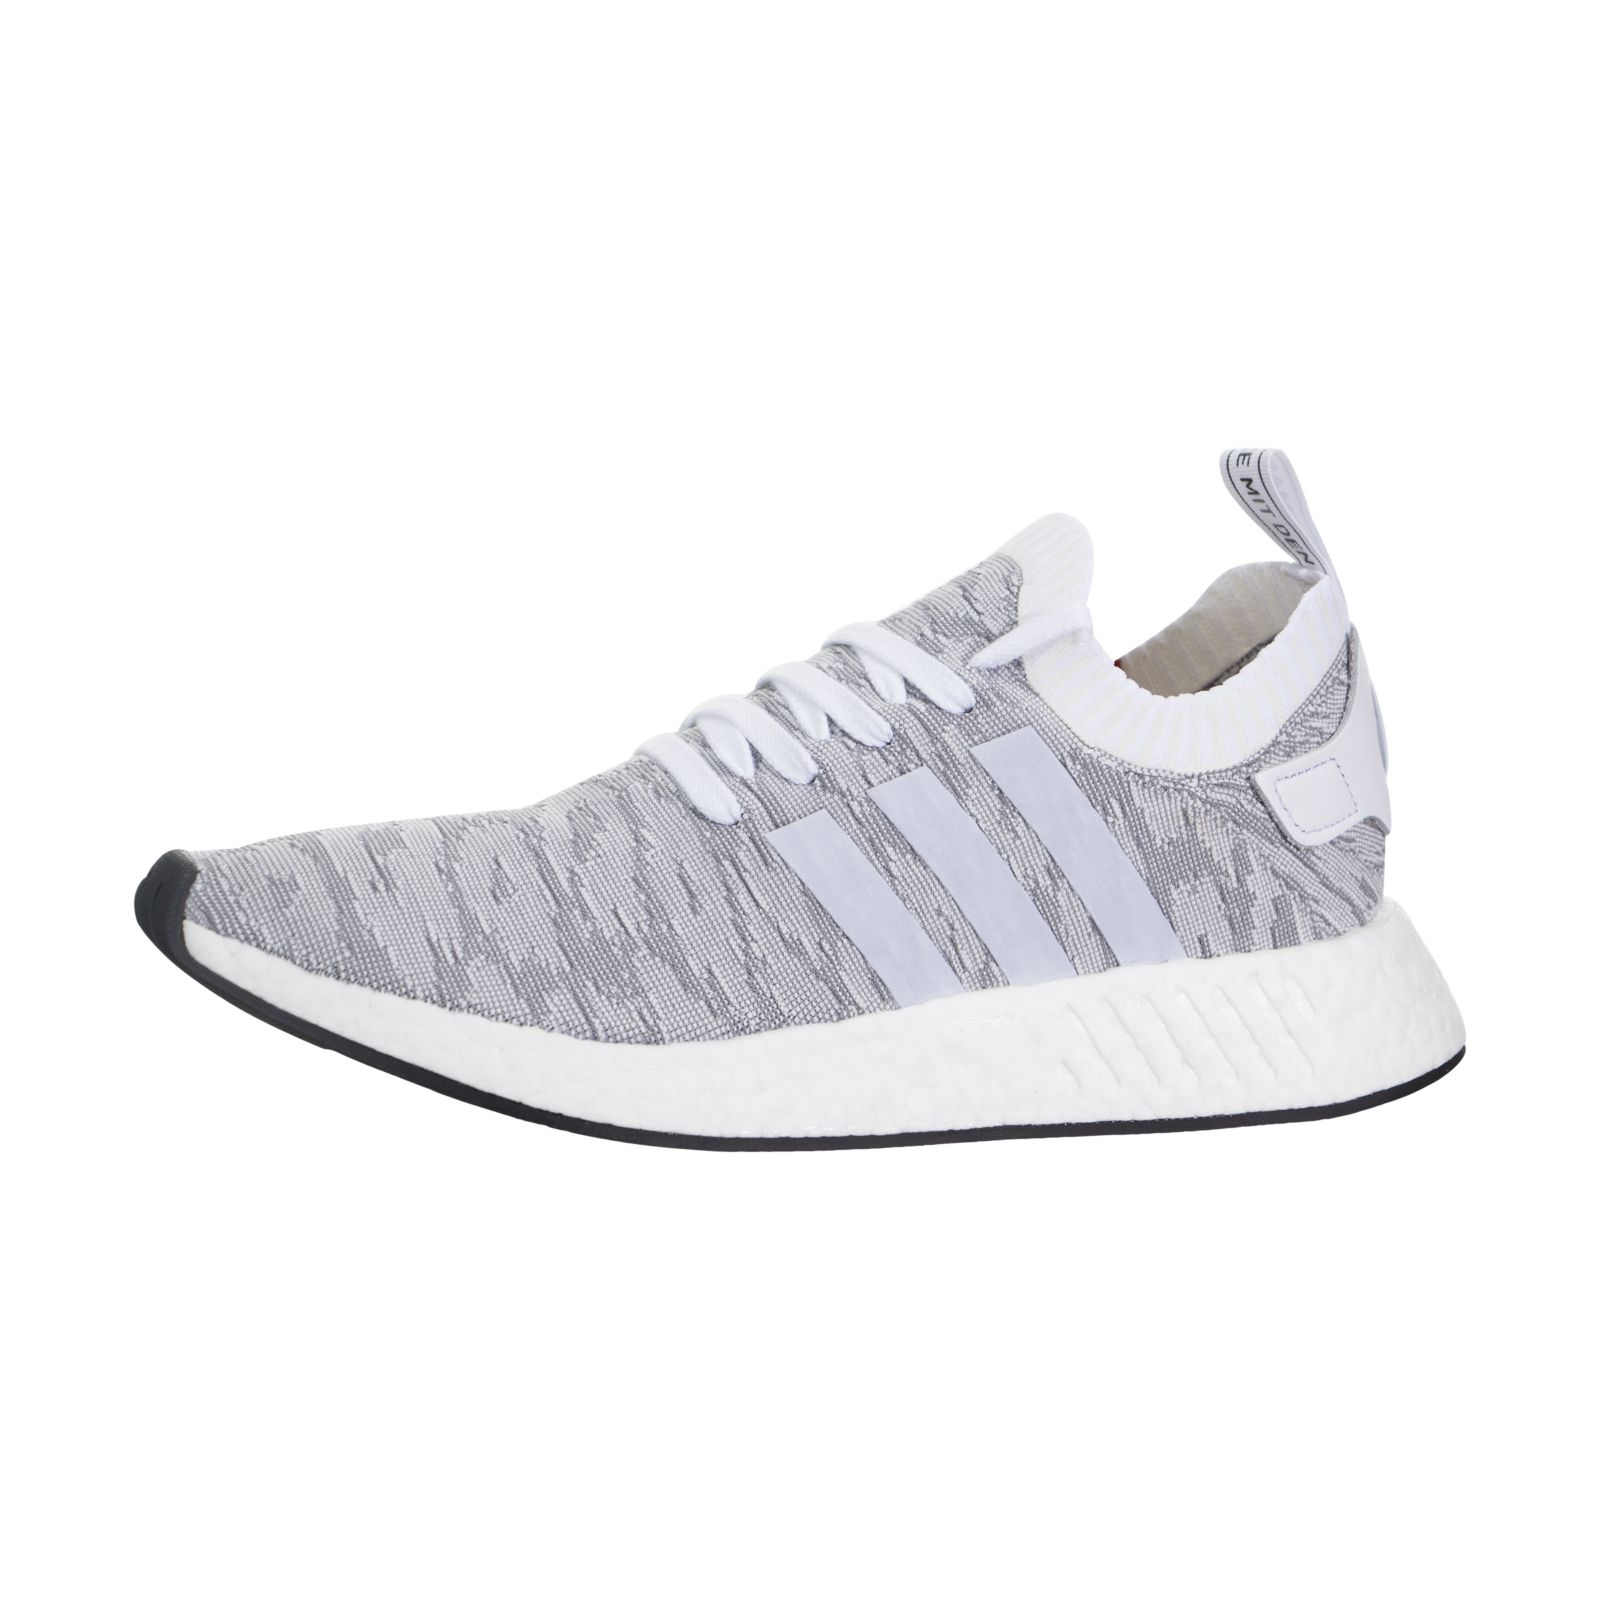 new style be569 d2875 Details about Adidas NMD_R2 (Primeknit) by9410